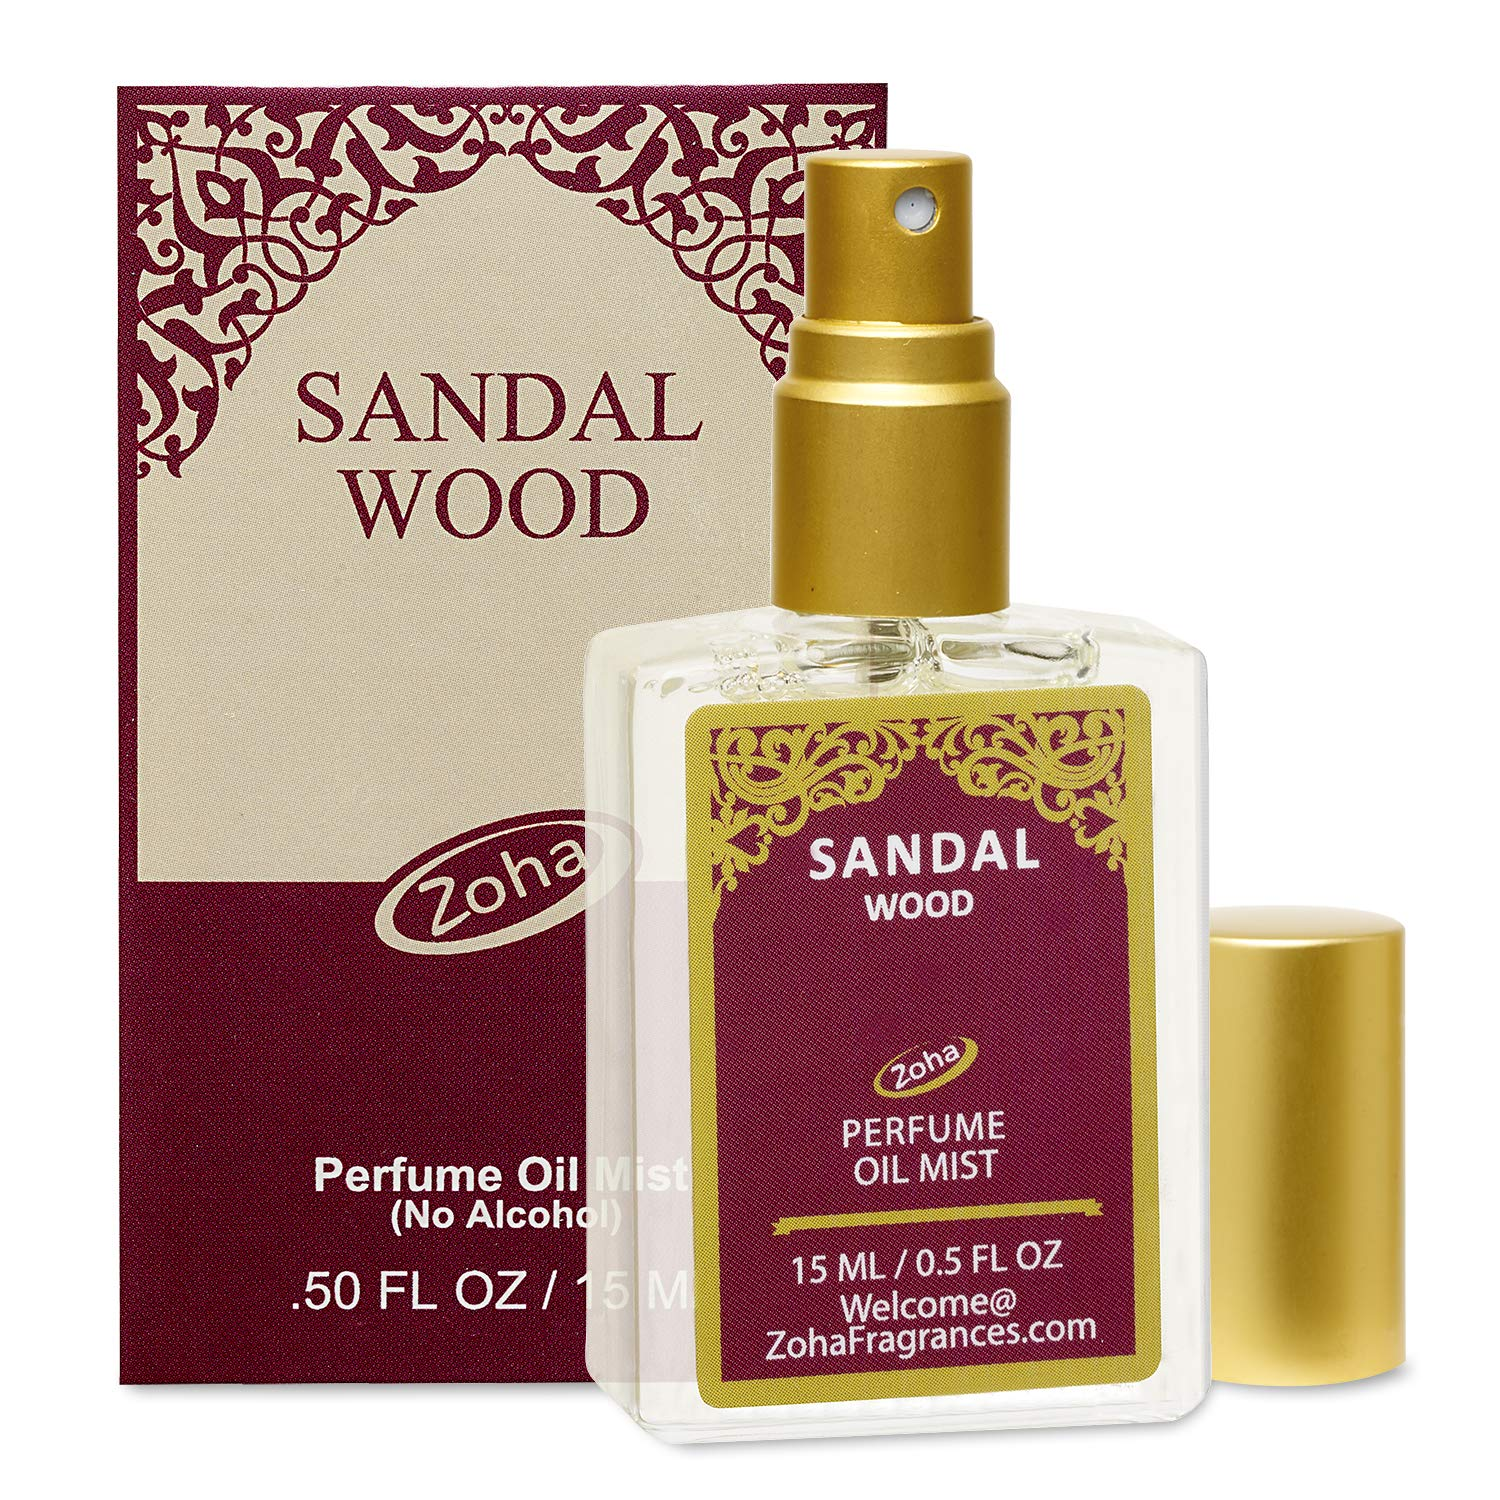 SandalWood Perfume Oil Mist (No Alcohol) Sandalwood Oil Fragrance - Essential Oils and Perfumes for Women and Men by Zoha Fragrances, 15 ml / 0.50 fl Oz by Zoha